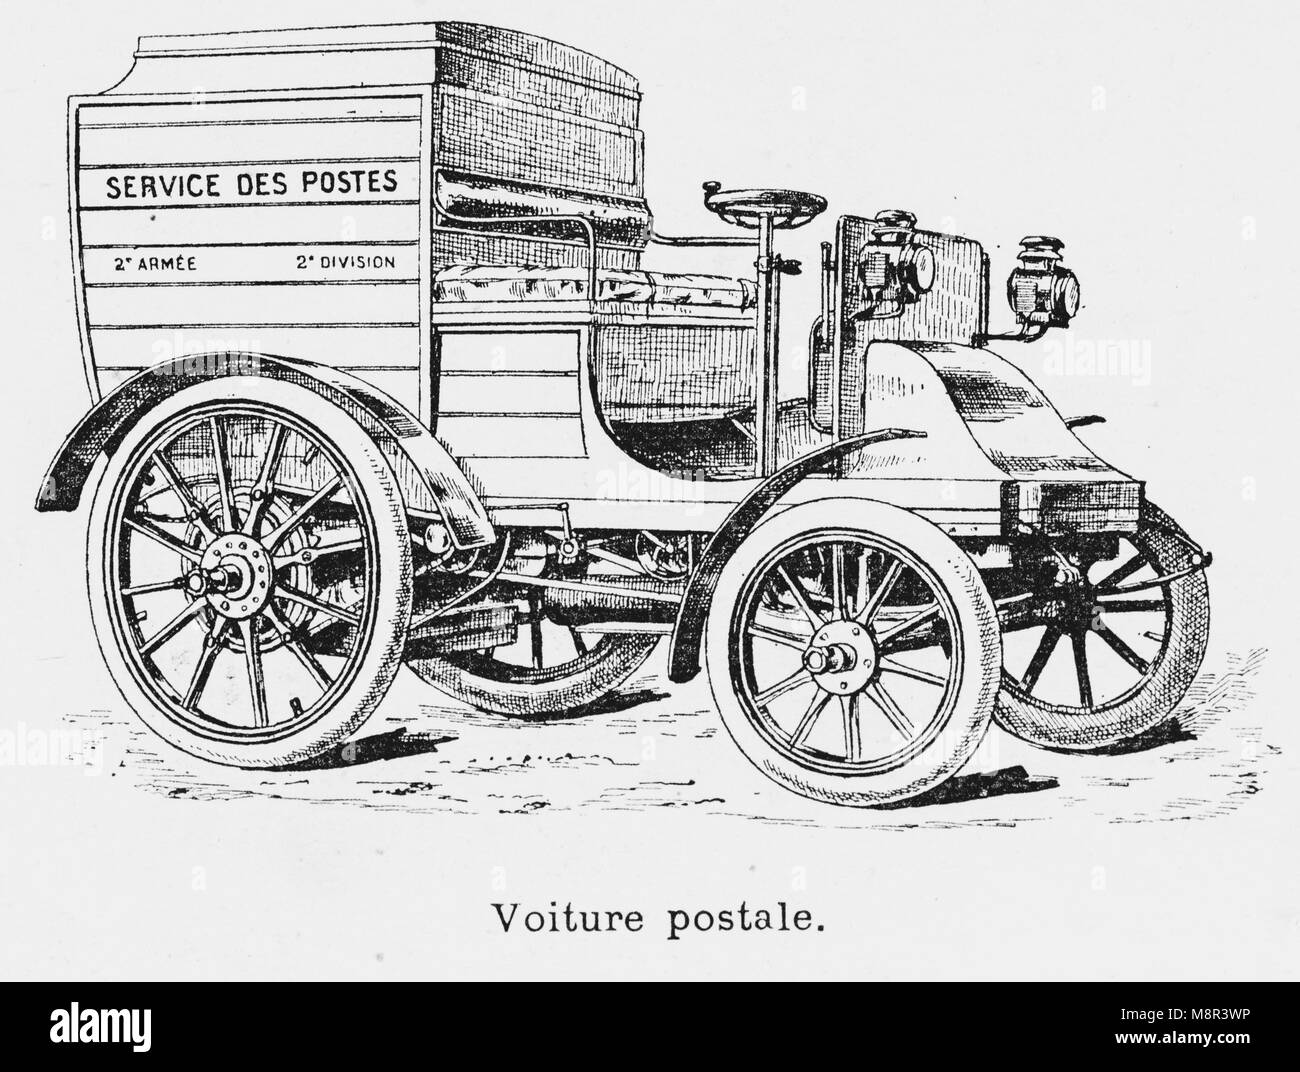 Military vehicles during the 1900 French military exercise, Postal vehicle, Picture from the French weekly newspaper - Stock Image